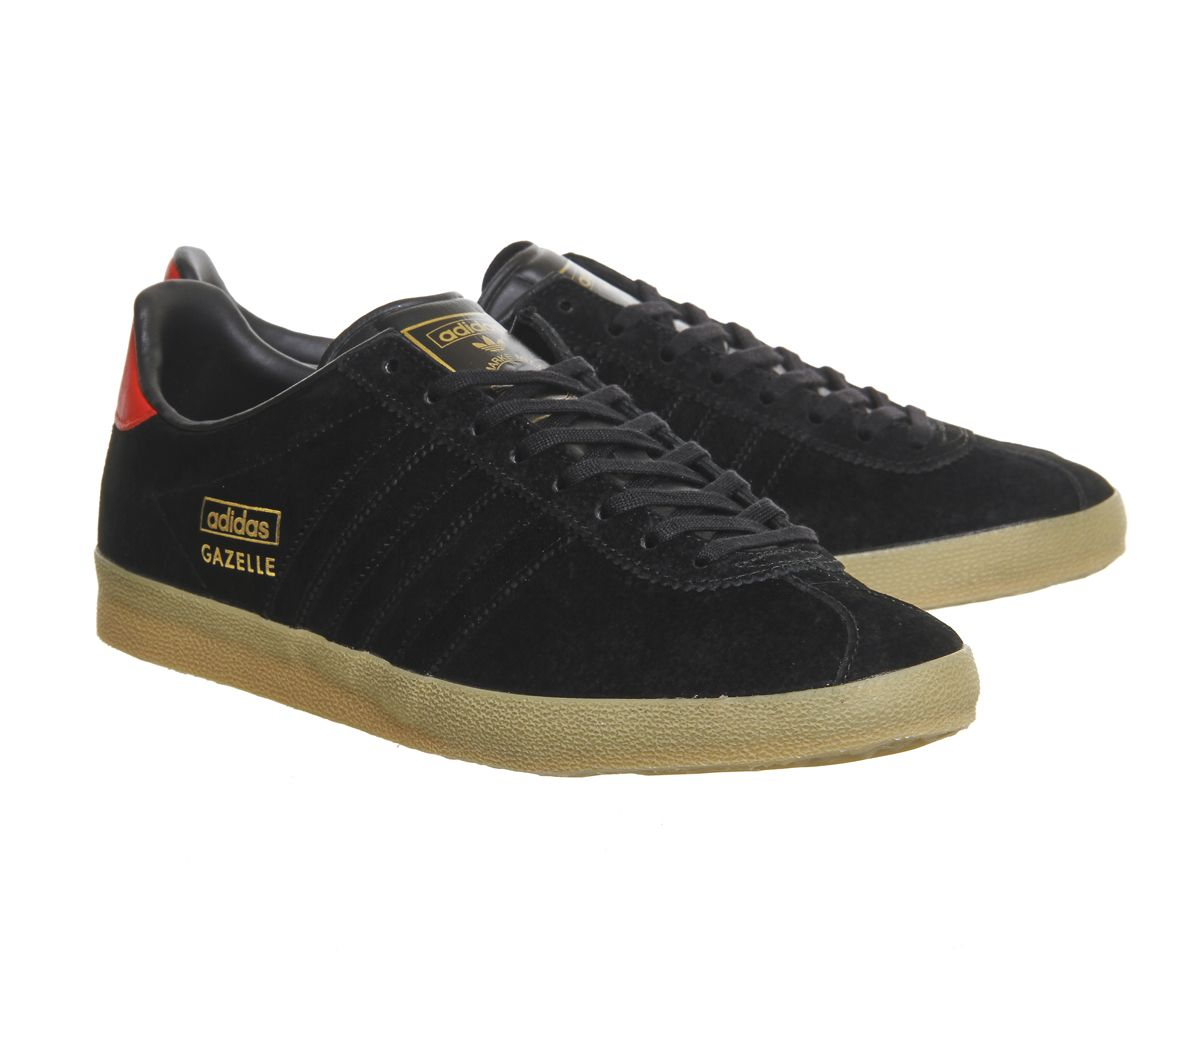 These understated bad boys were a sound release by adidas - Gazelle Og  finished in Black